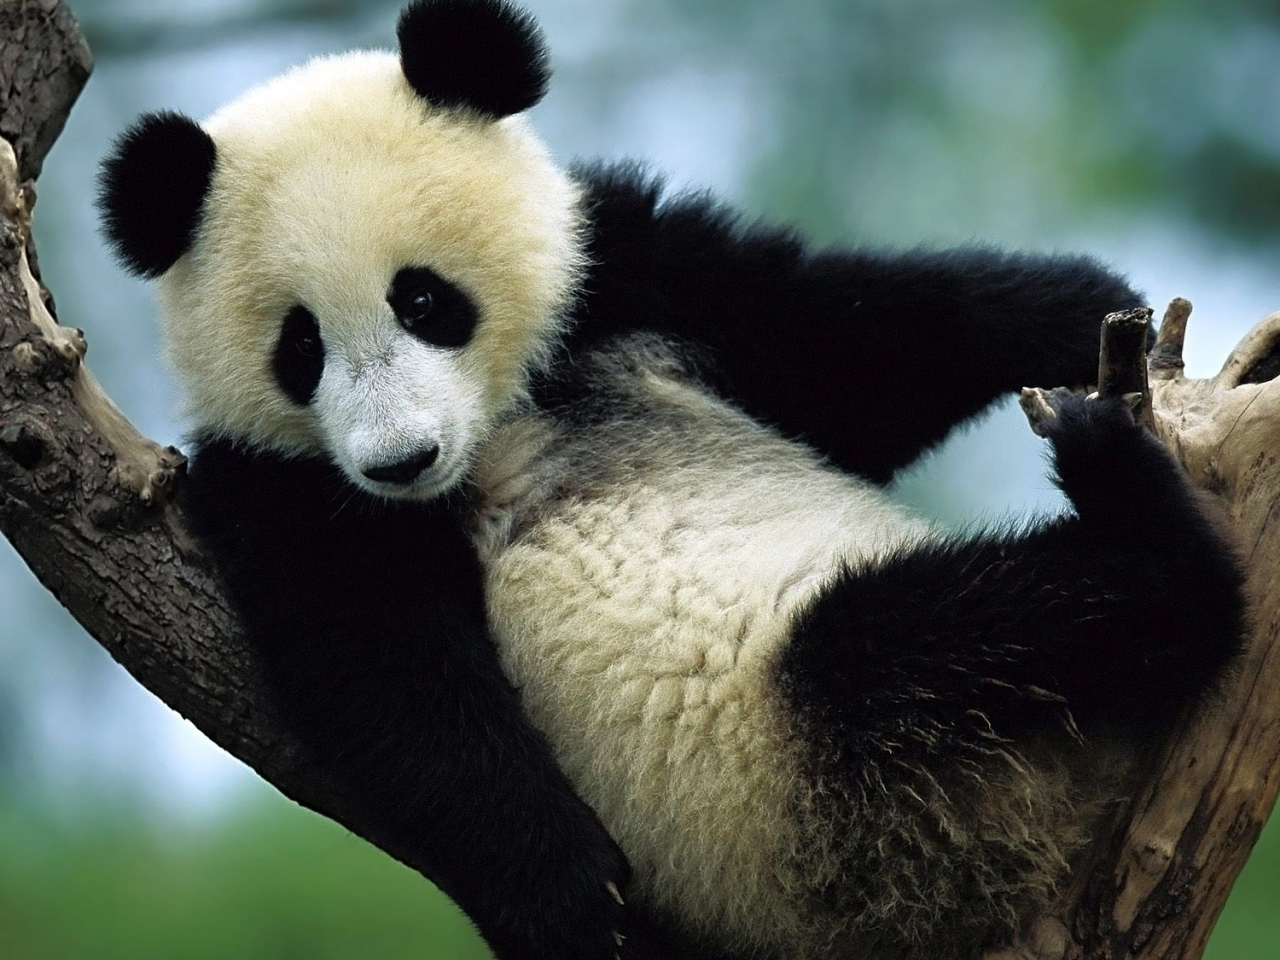 38325 download wallpaper Animals, Pandas screensavers and pictures for free